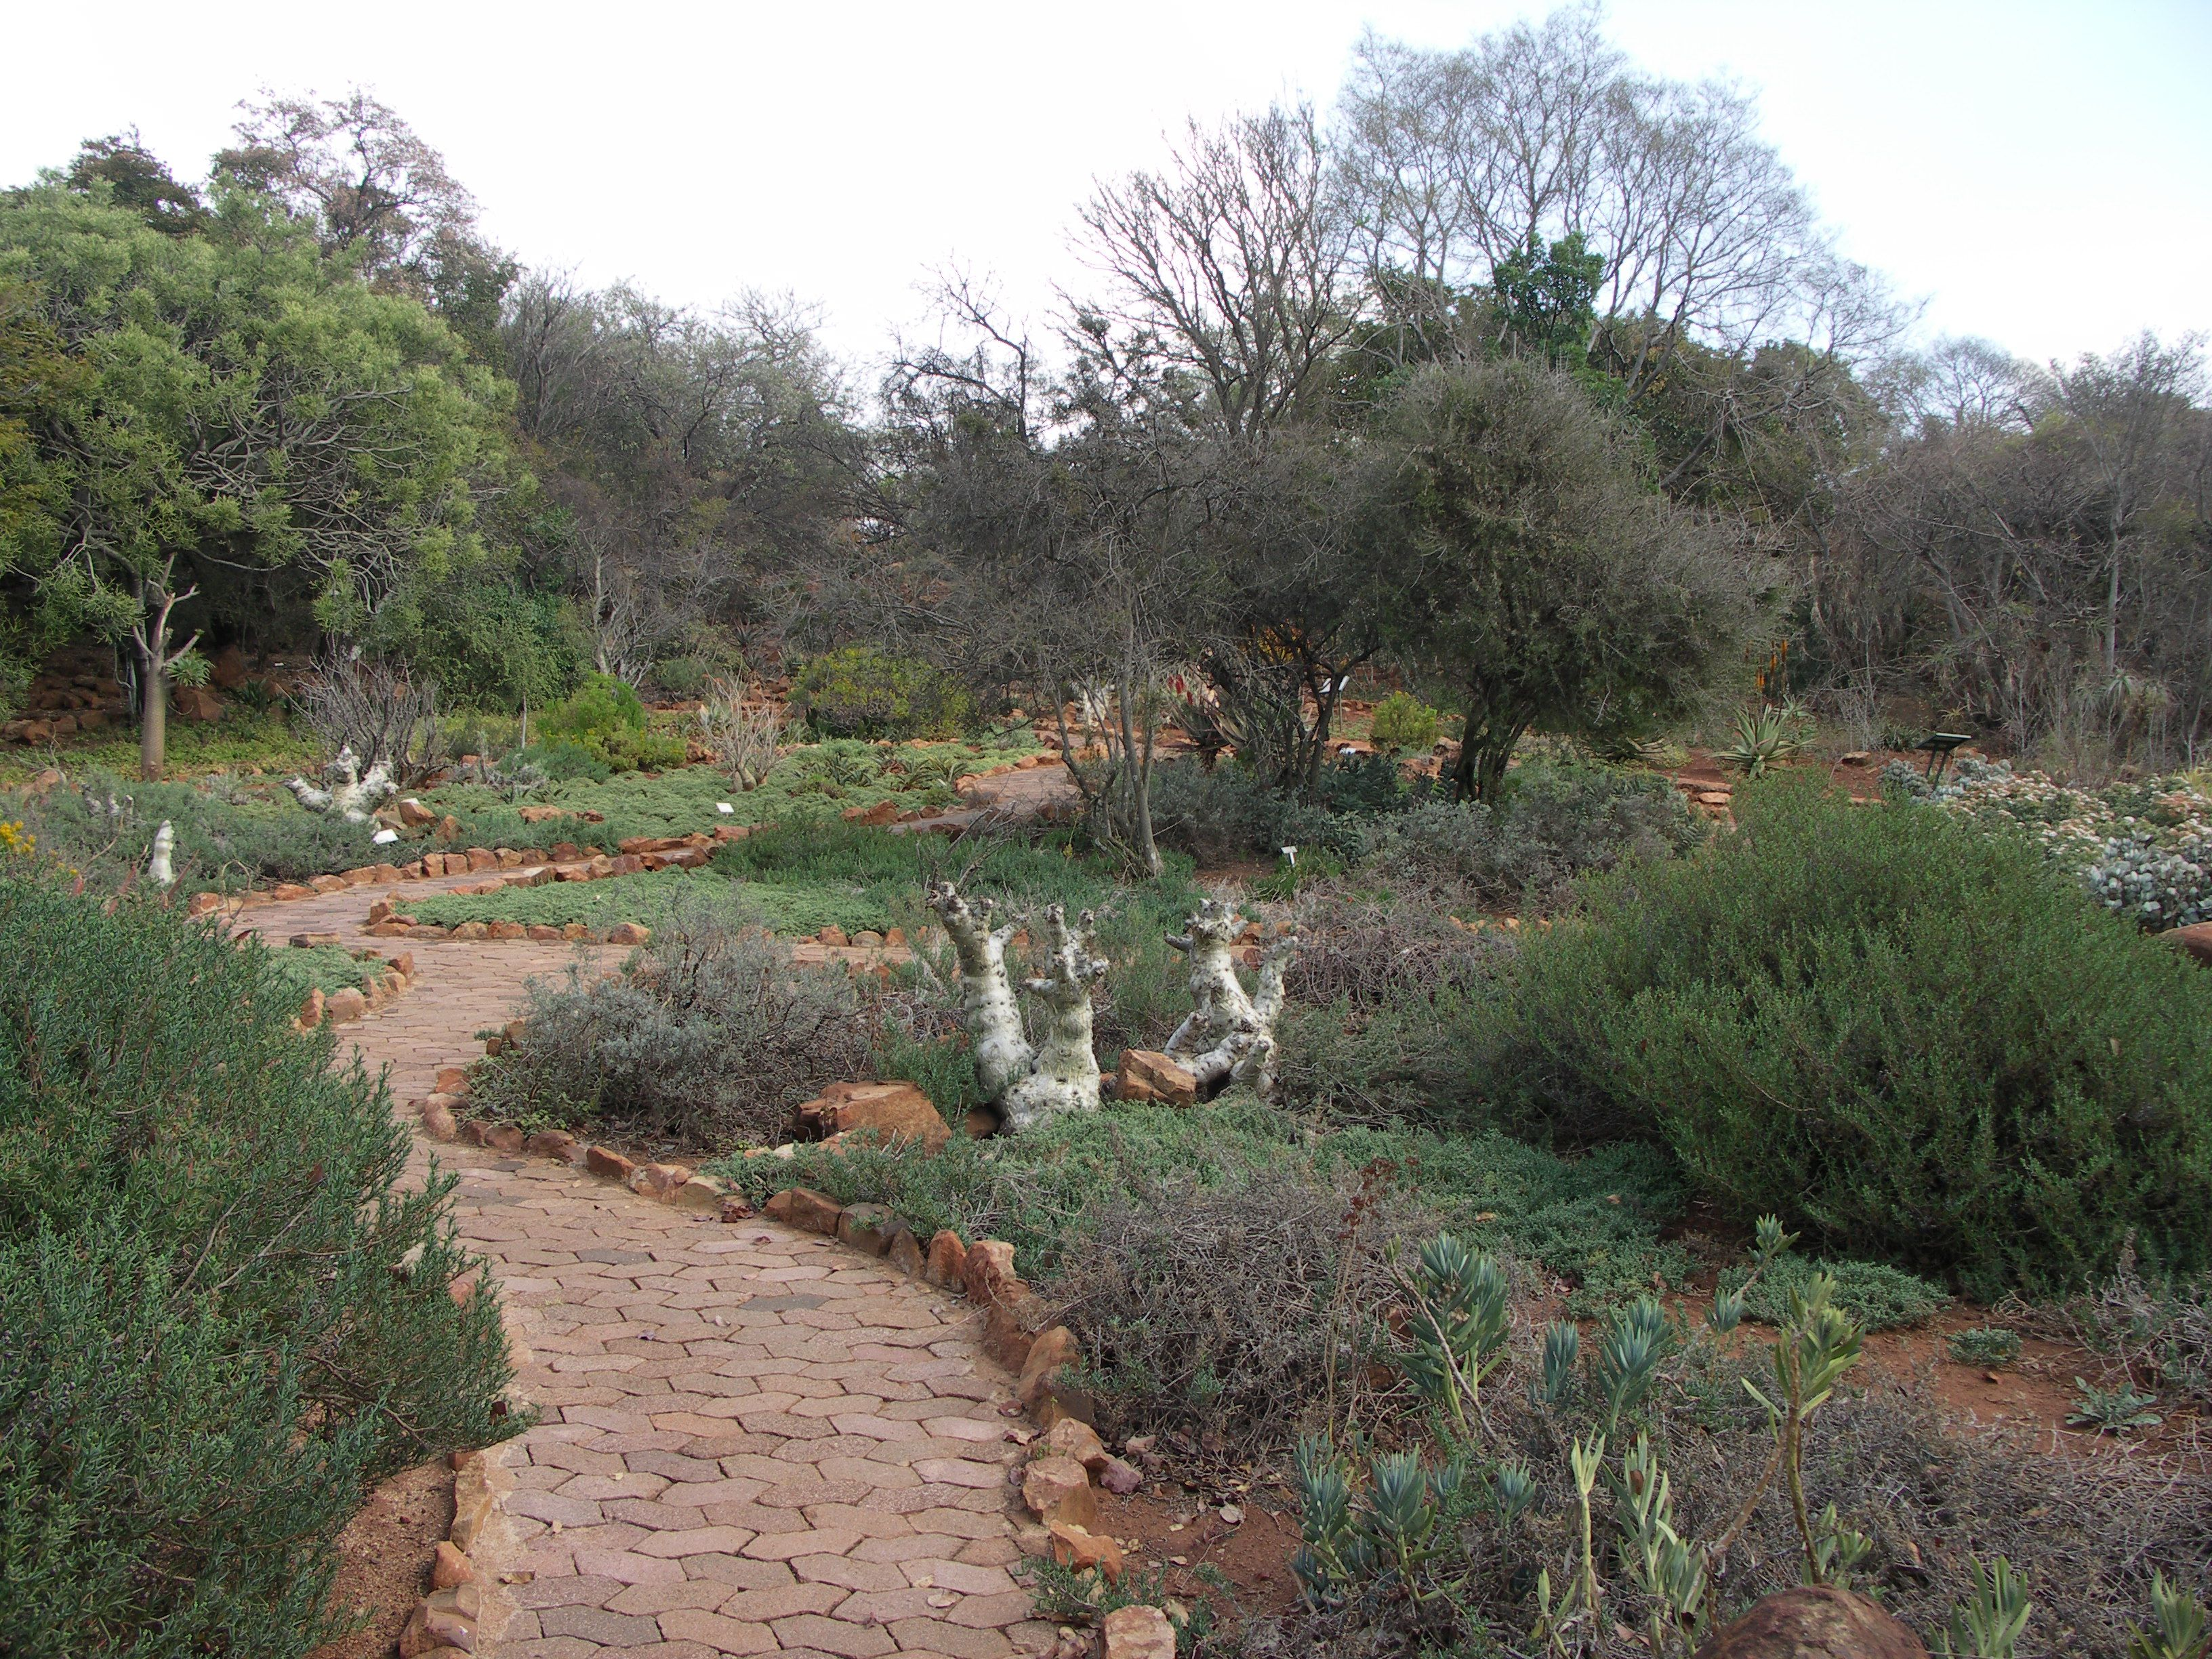 Pretoria South Africa This Is A Picture Of Their National Botanical Gardens National Botanical Gardens South Africa Africa